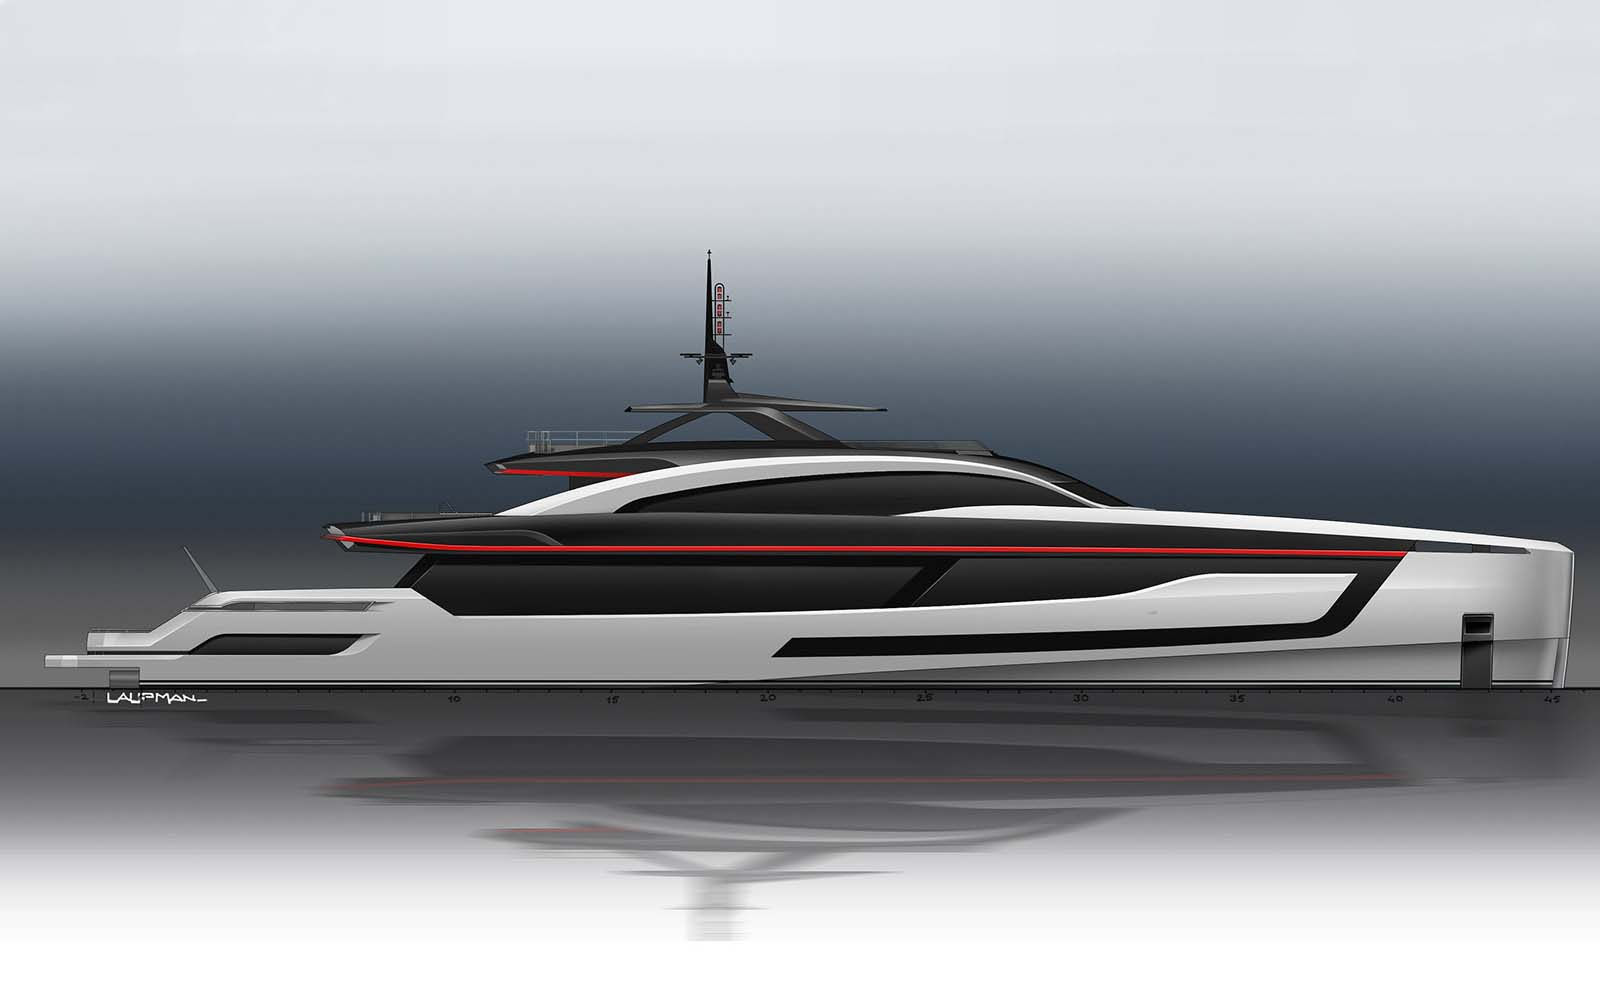 heesen superiate project skyfall - boat shopping